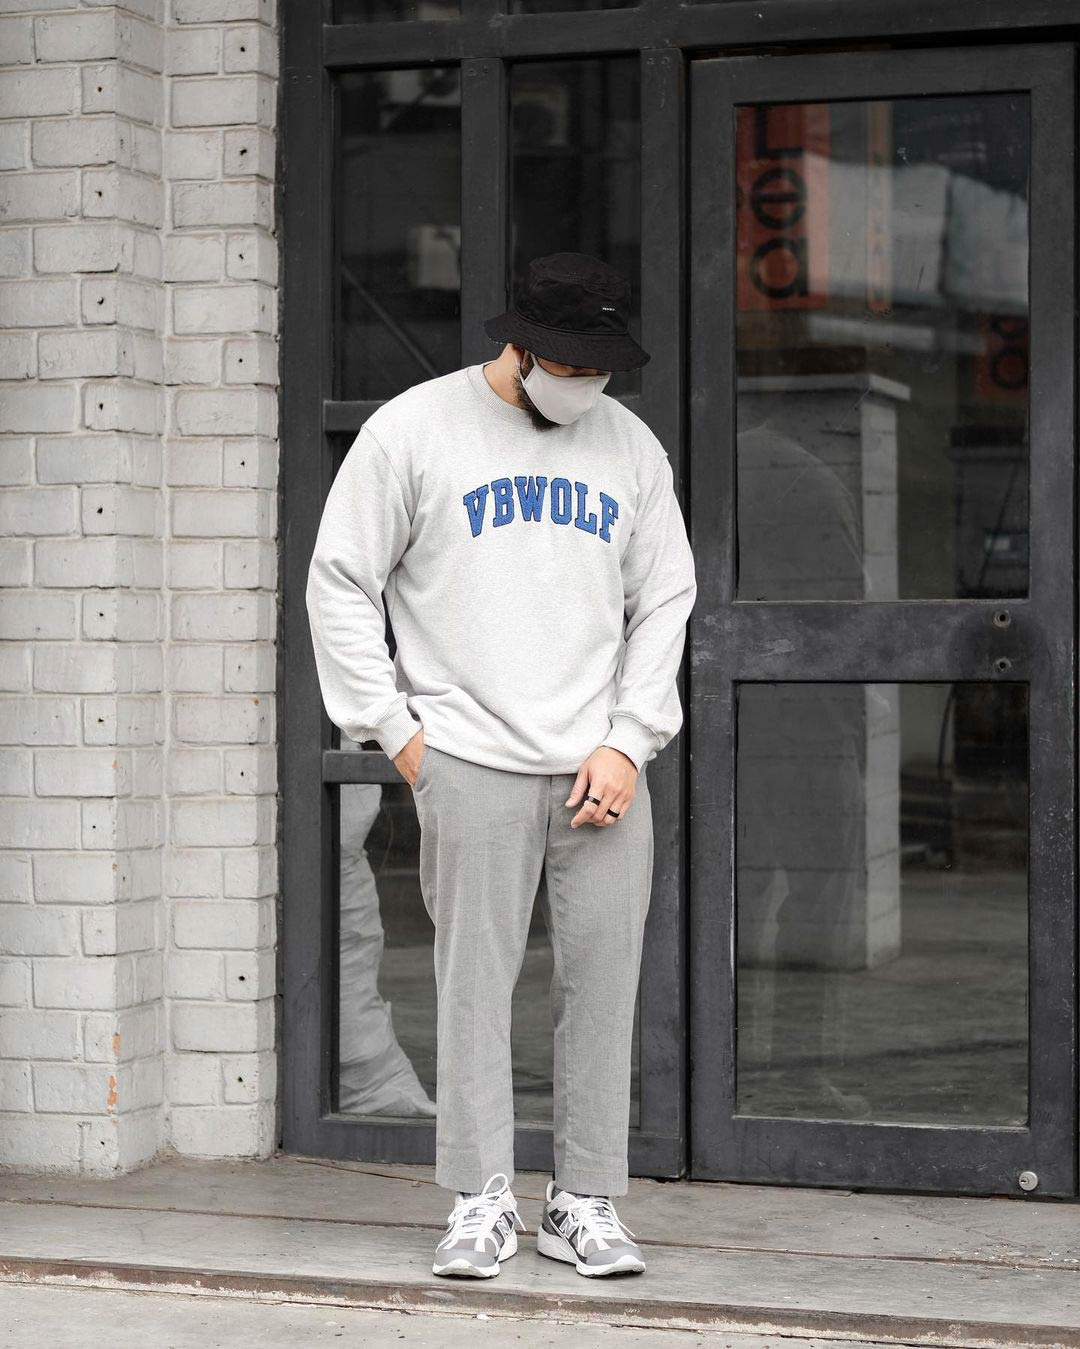 """<strong style=""""text-transform: capitalize; font-weight: 500; font-size: 11px;"""">VBWOLF Towel Sweatshirt</strong> <br> <span style=""""color: #848383;"""">SHOP NOW</span>"""